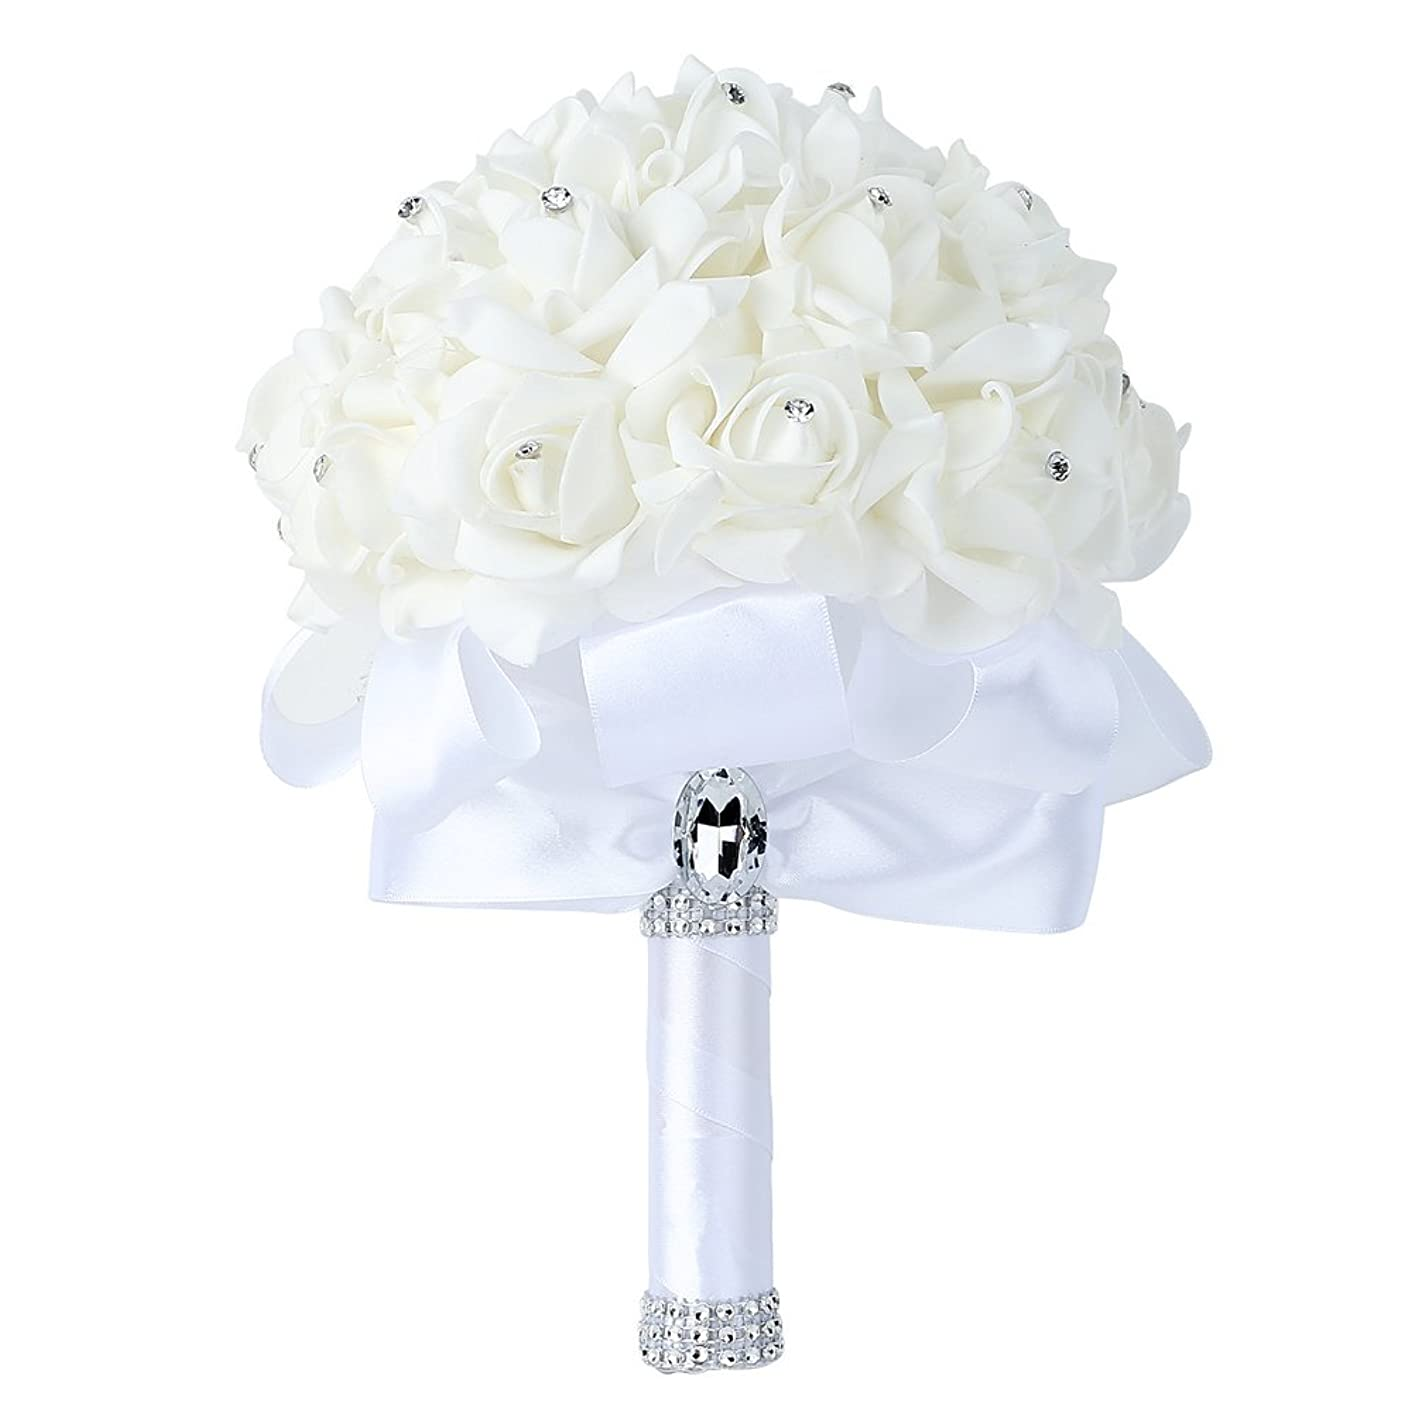 Febou Wedding Bouquet, Big Size White Bridesmaid Bouquet Bridal Bouquet with Crystals Soft Ribbons, Artificial Rose Flowers for Wedding, Party and Church White Big Size